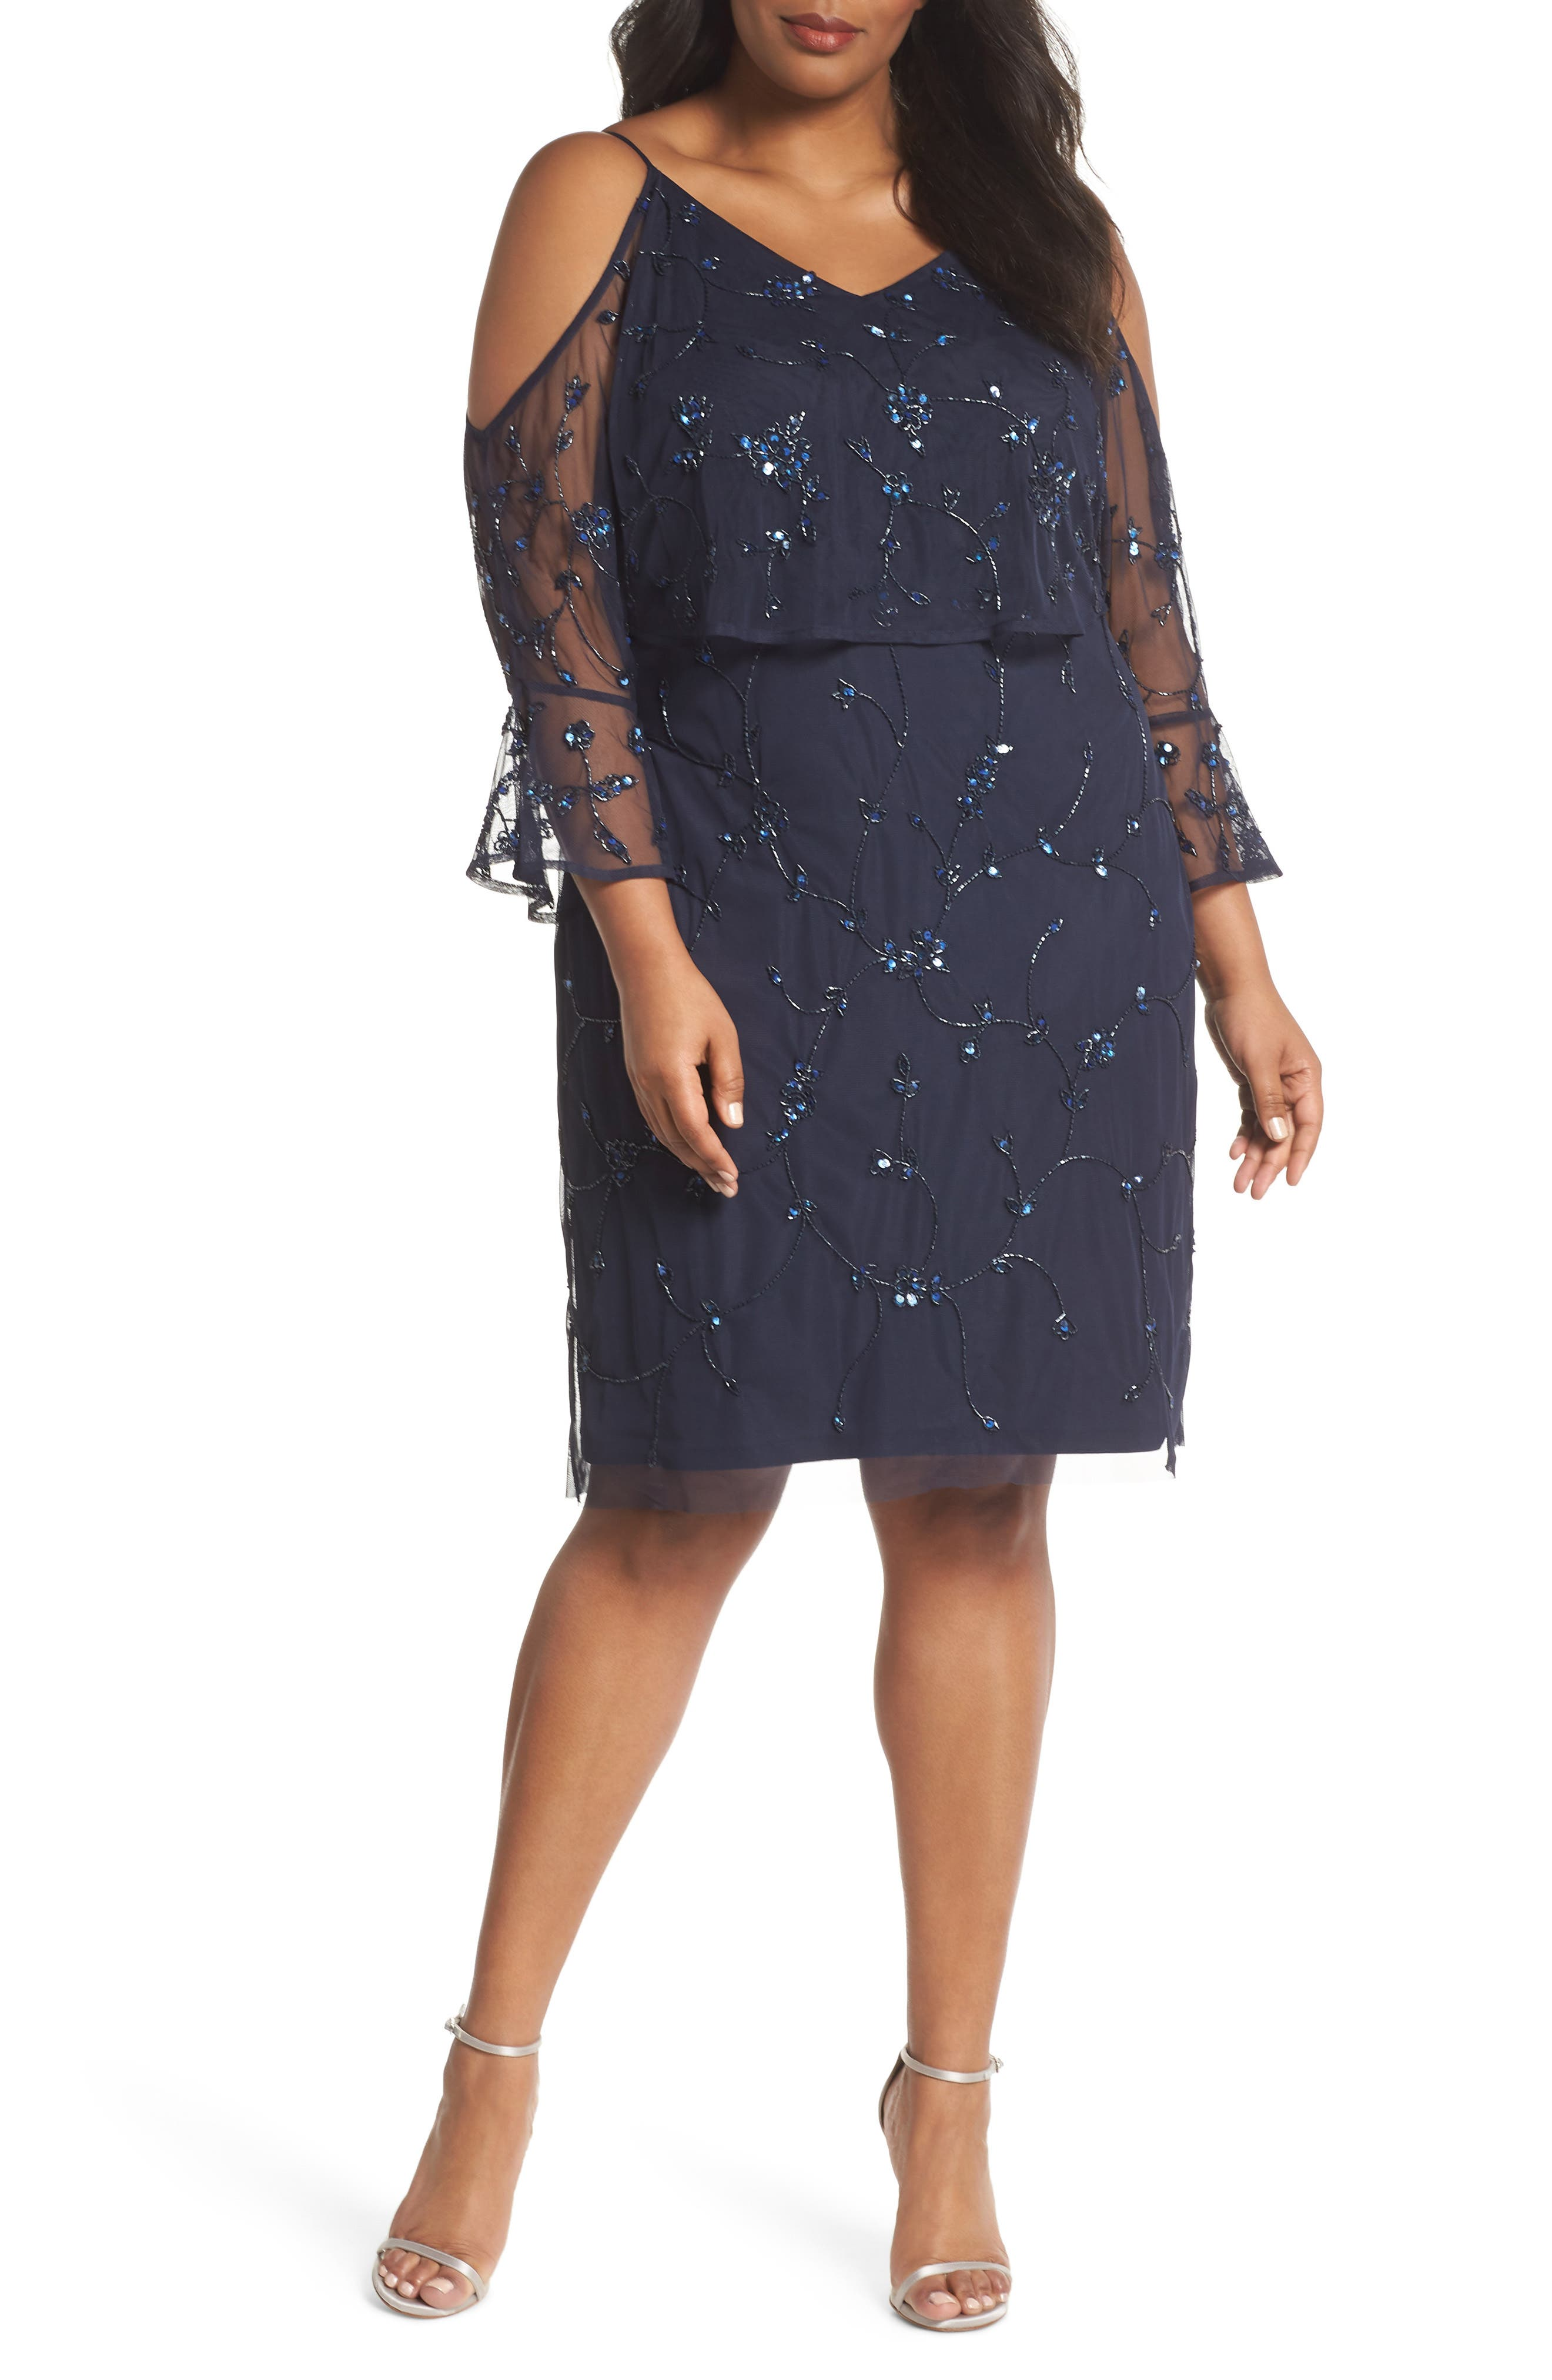 Adrianna Papell Vine Beaded Cold Shoulder Mesh Dress (Plus Size)